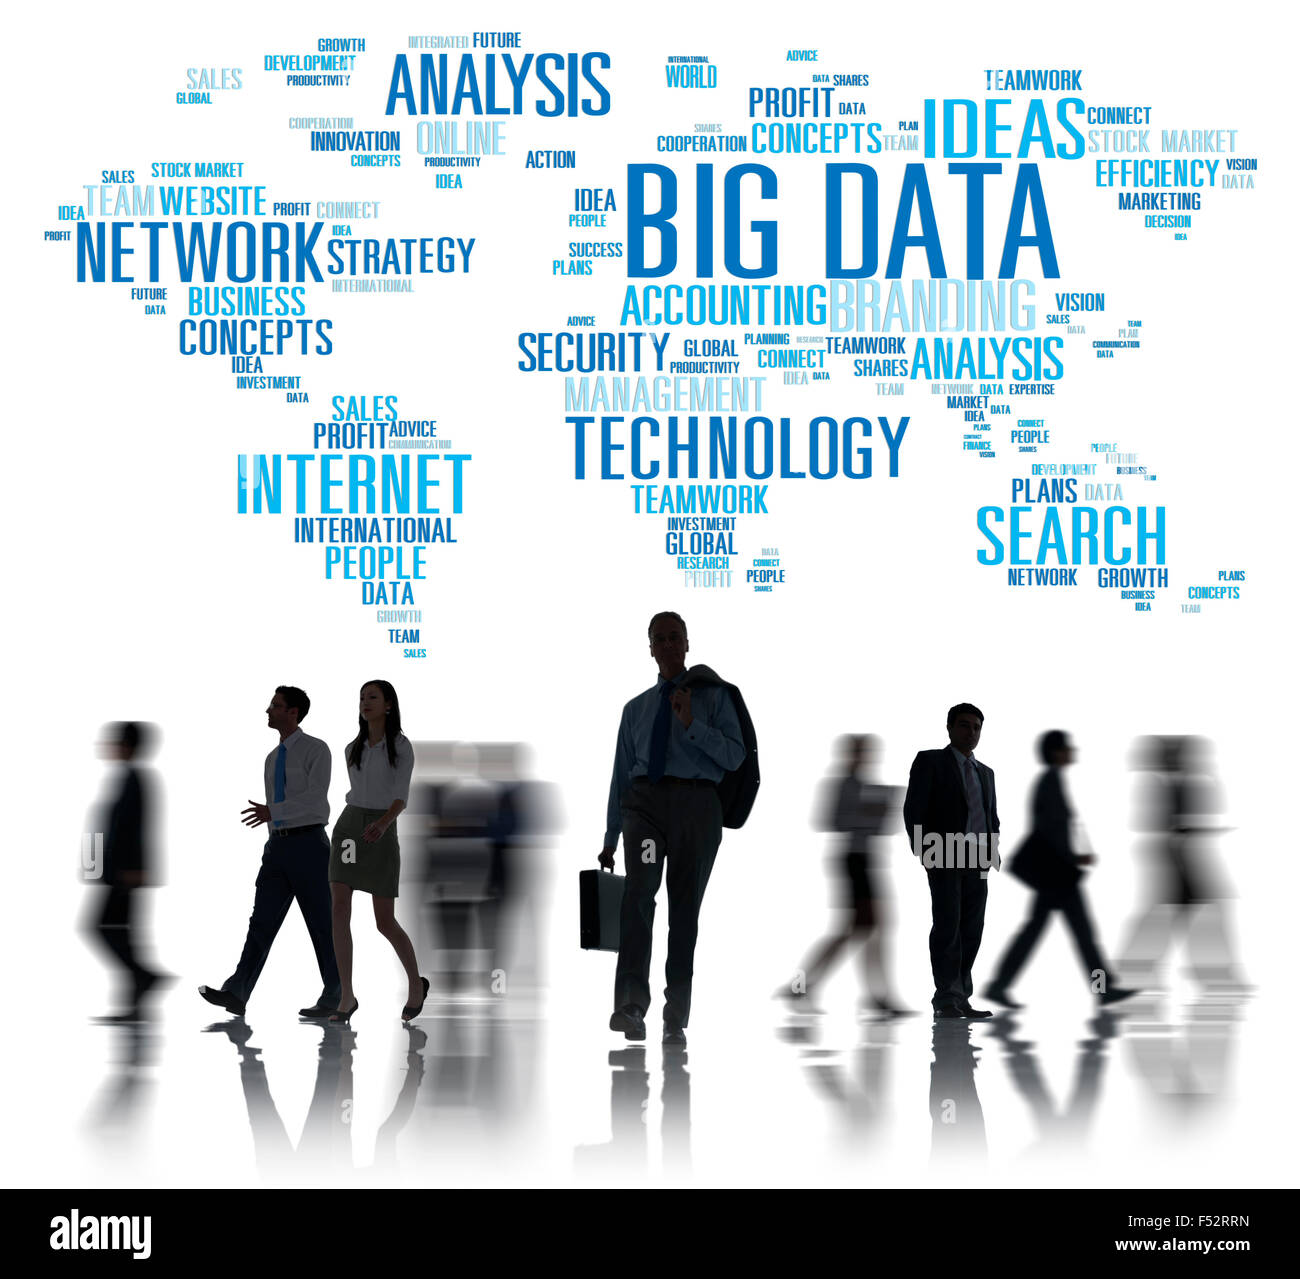 Big data storage information world map concept stock photo 89187721 big data storage information world map concept gumiabroncs